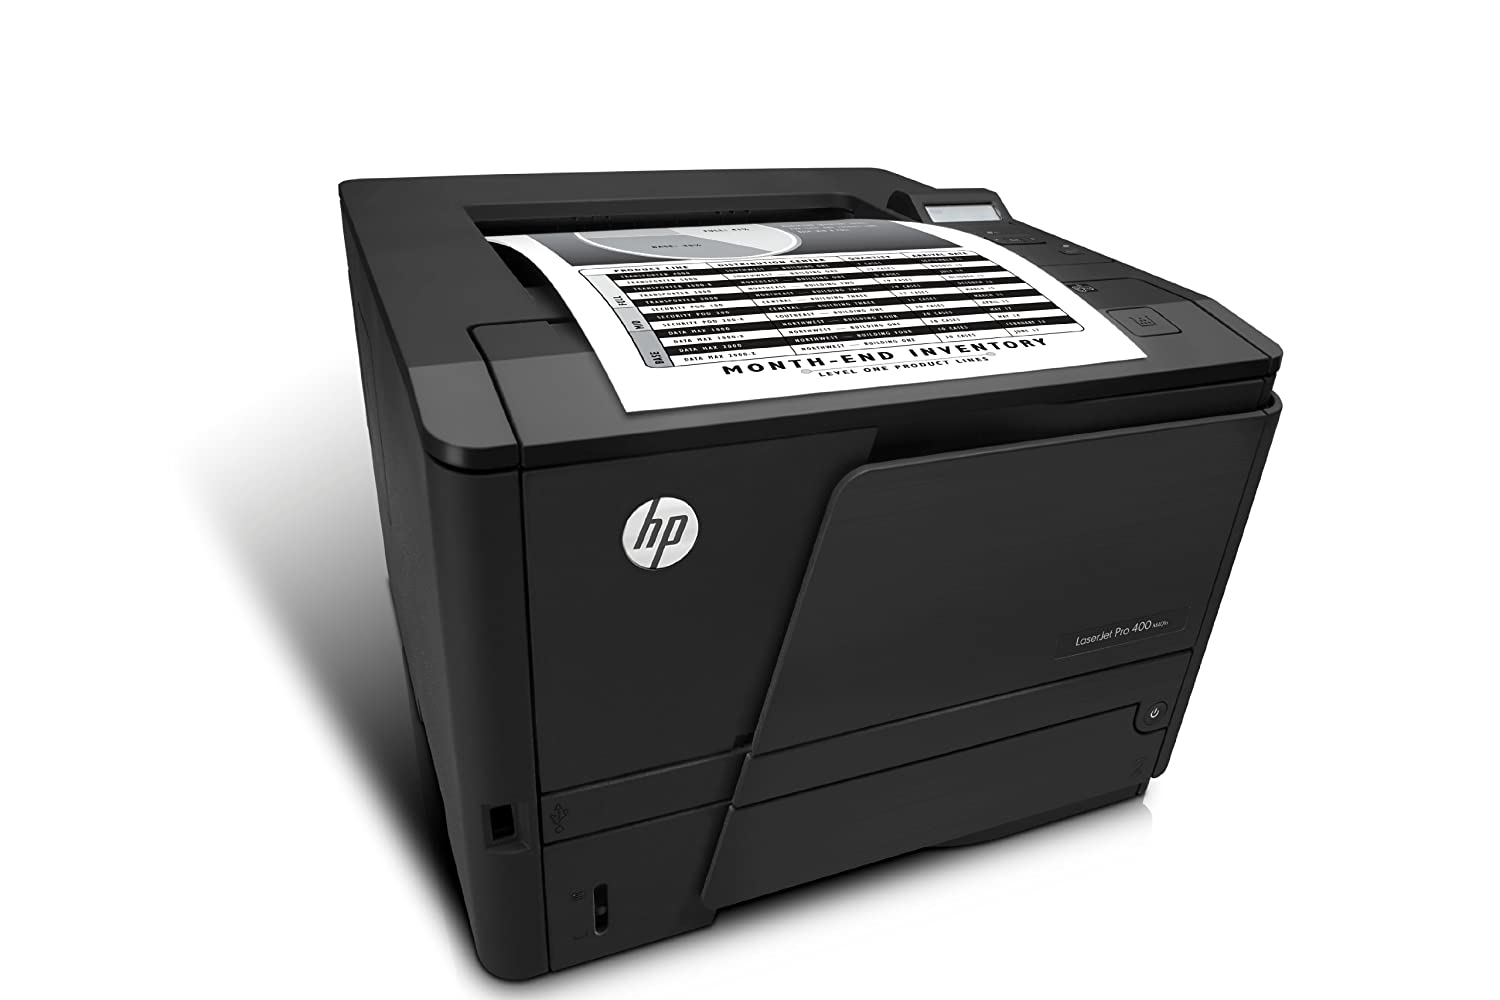 Office depot color printing costs - Amazon Com Hp Laserjet Pro 400 M401n Monochrome Printer Cz195a Discontinued By Manufacturer Electronics